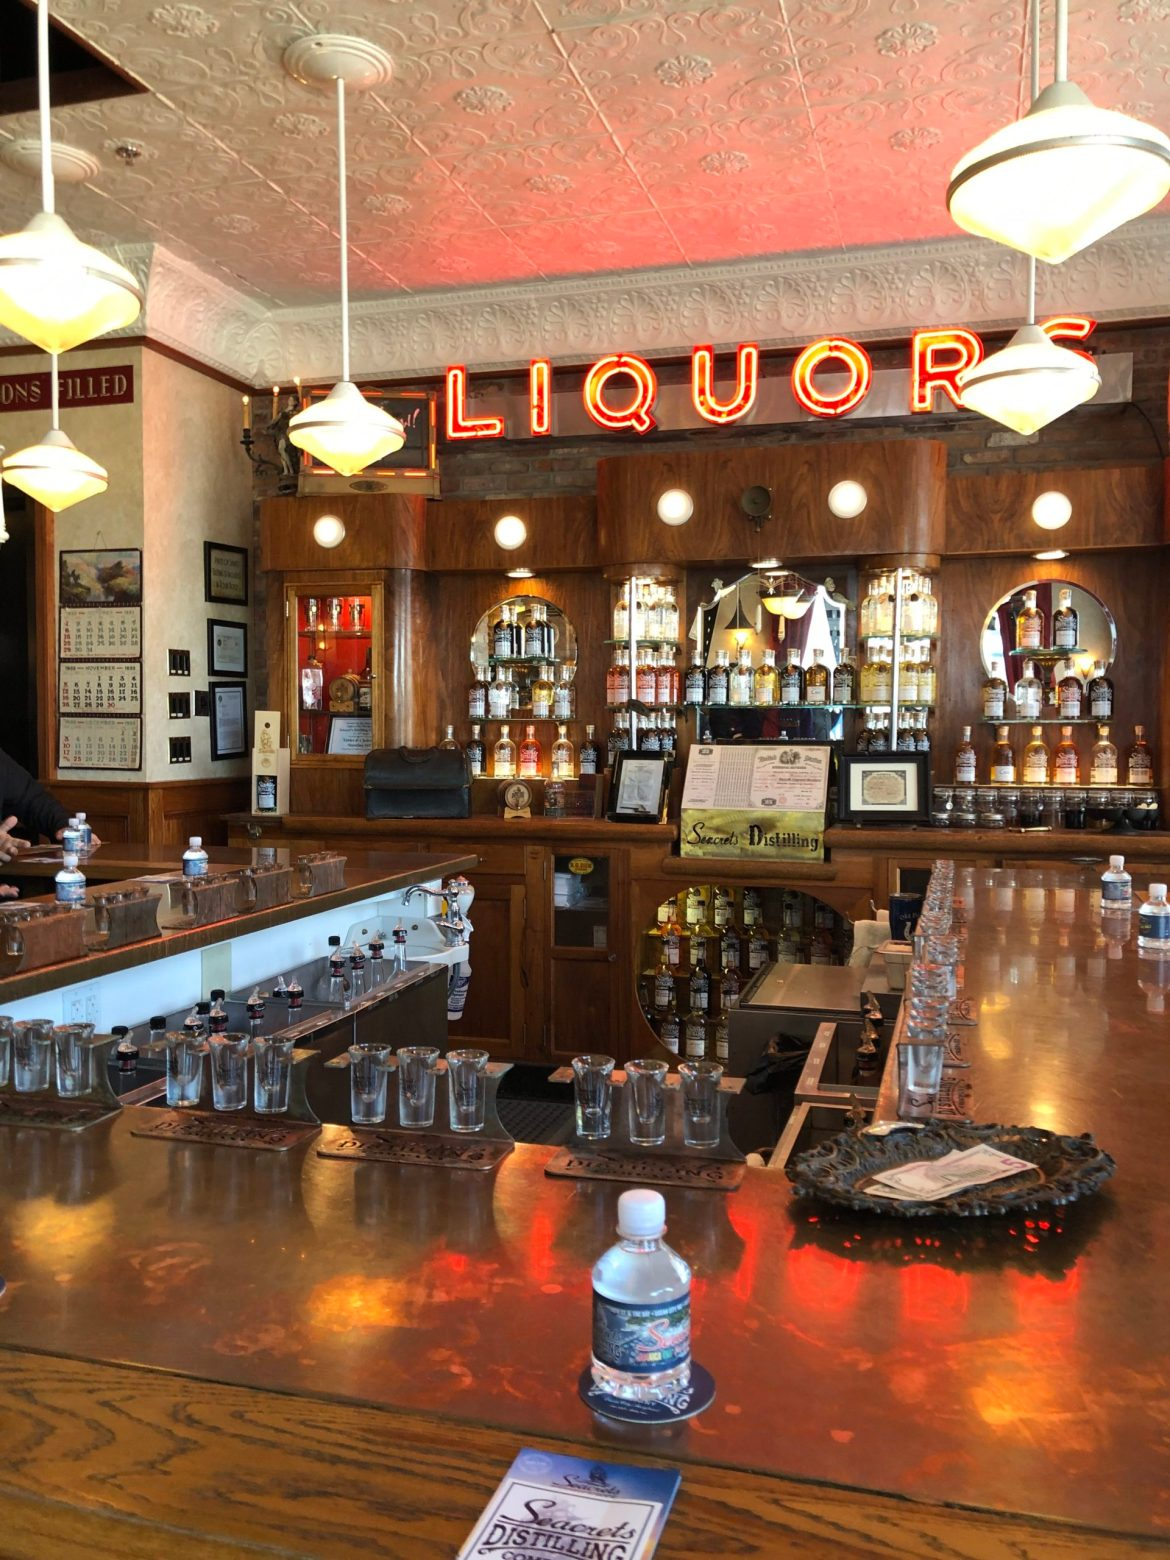 The bar with antiques